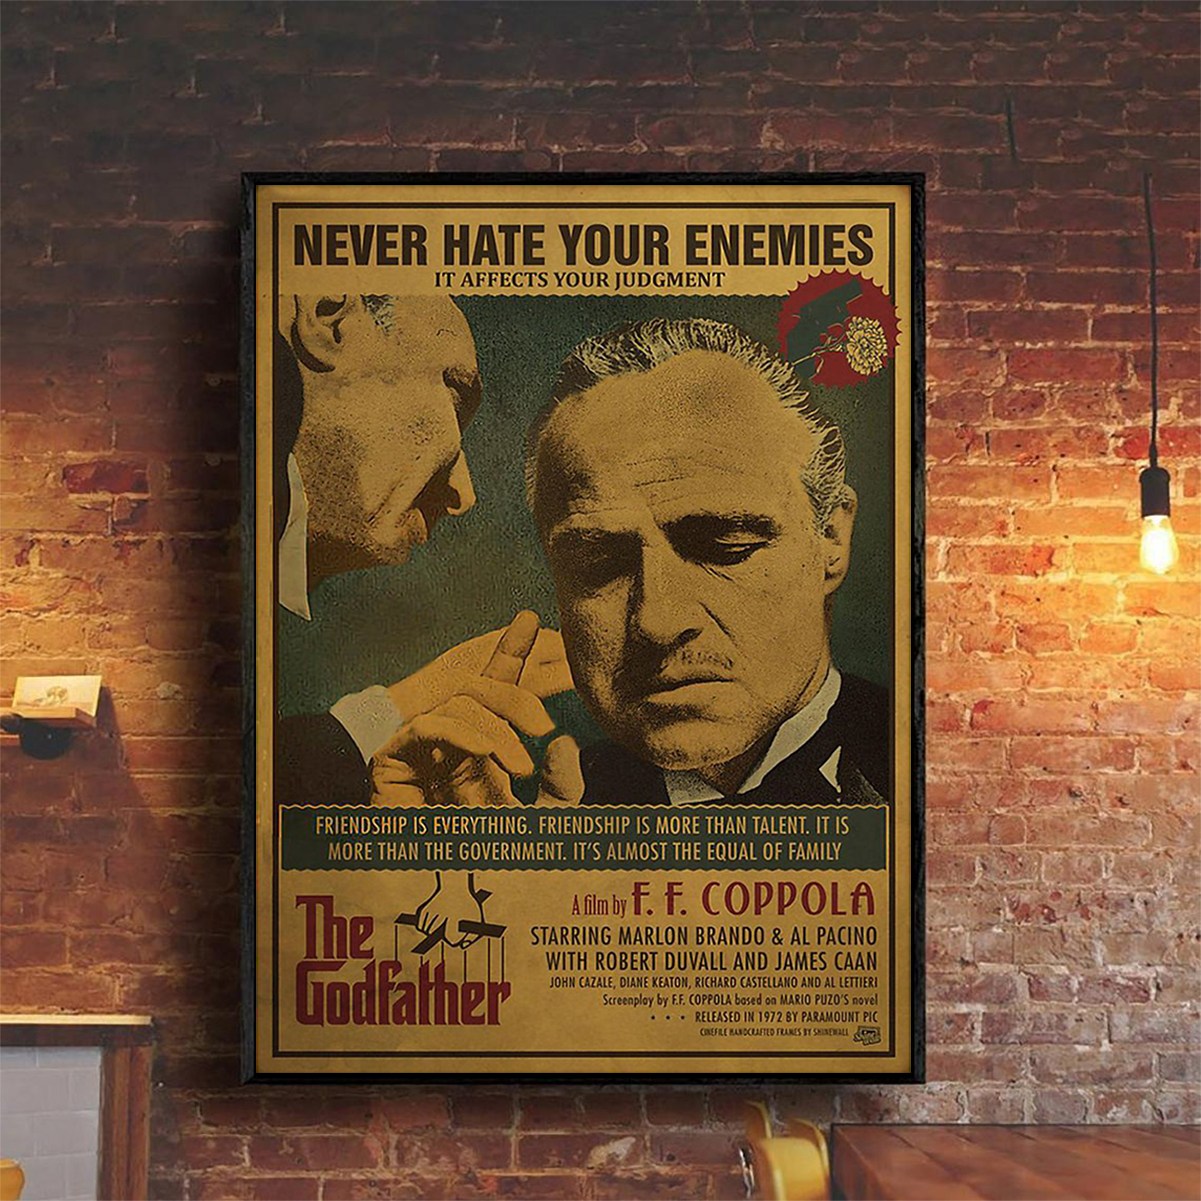 The godfather never hate your enemies it affects your judgment poster A2